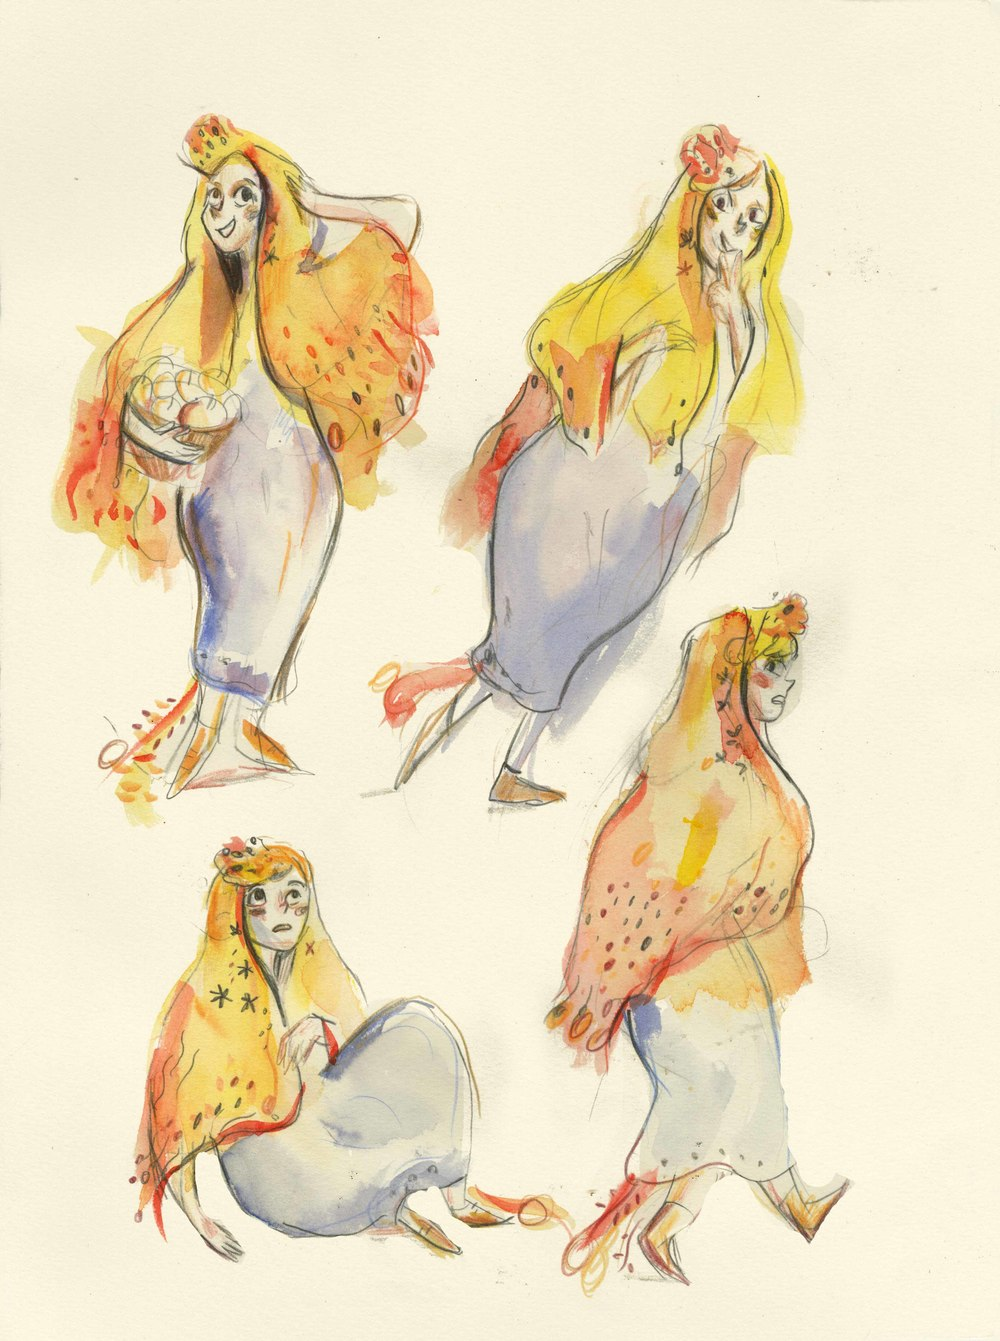 Character design's for 'Ivana and the Firebird'.